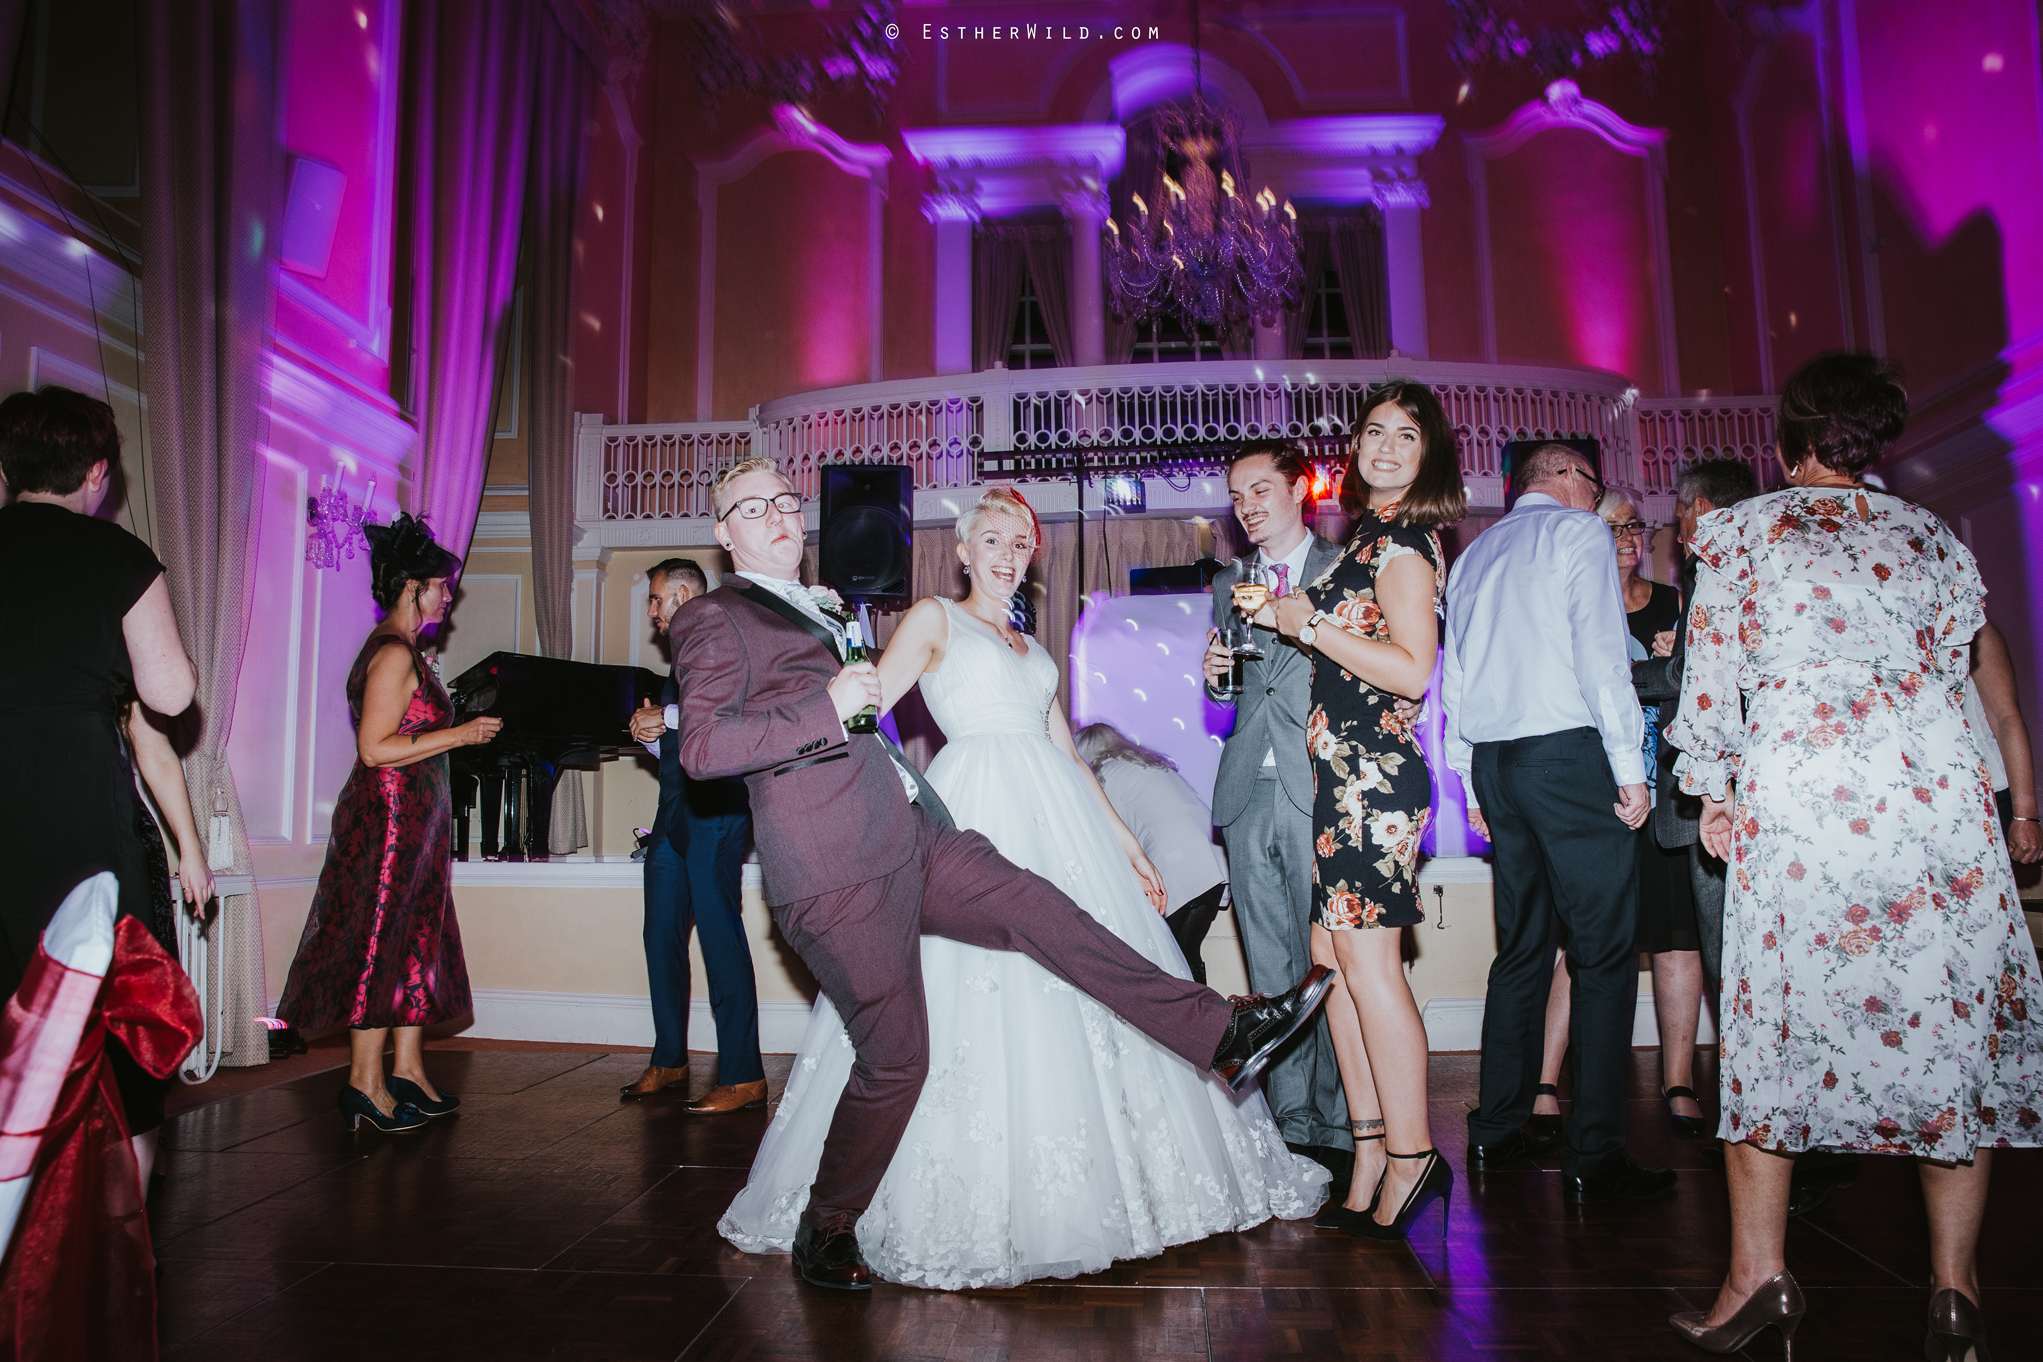 Norwich_Assembly_House_Wedding_Esther_Wild_Photographer_IMG_5038.jpg